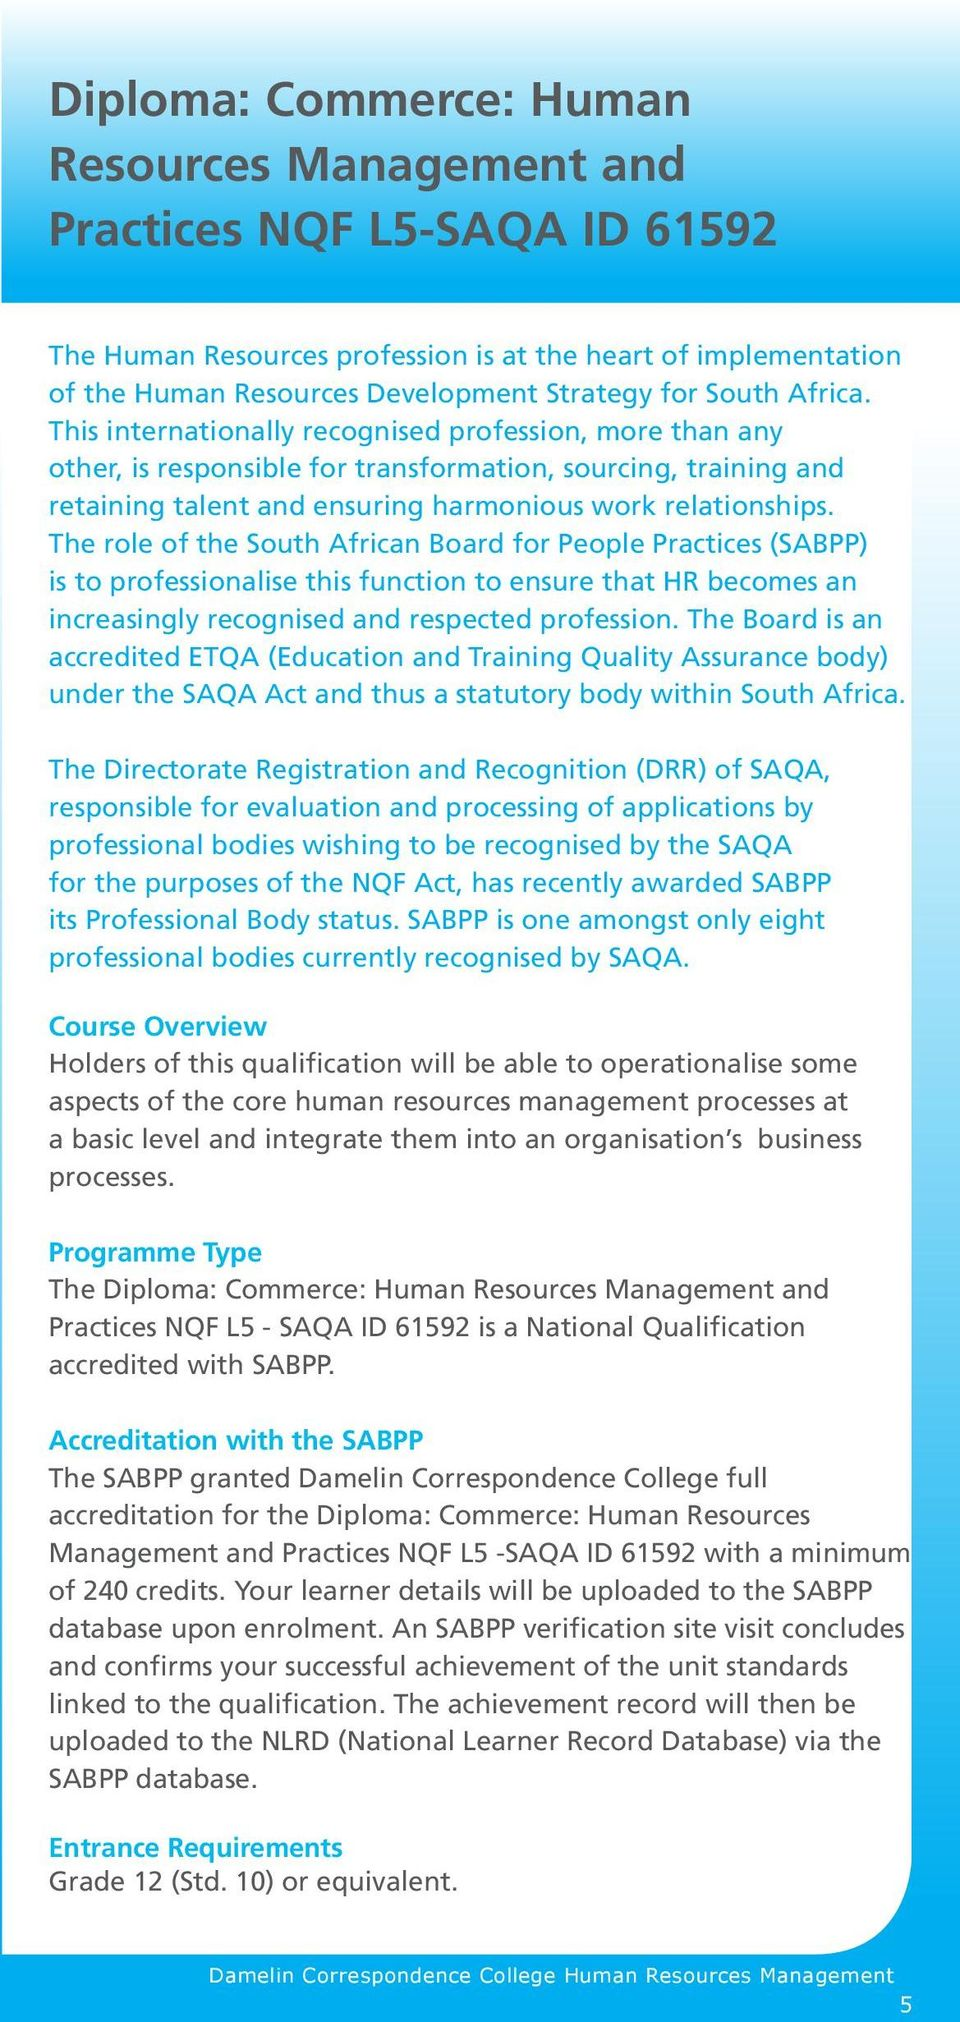 The role of the South African Board for People Practices (SABPP) is to professionalise this function to ensure that HR becomes an increasingly recognised and respected profession.